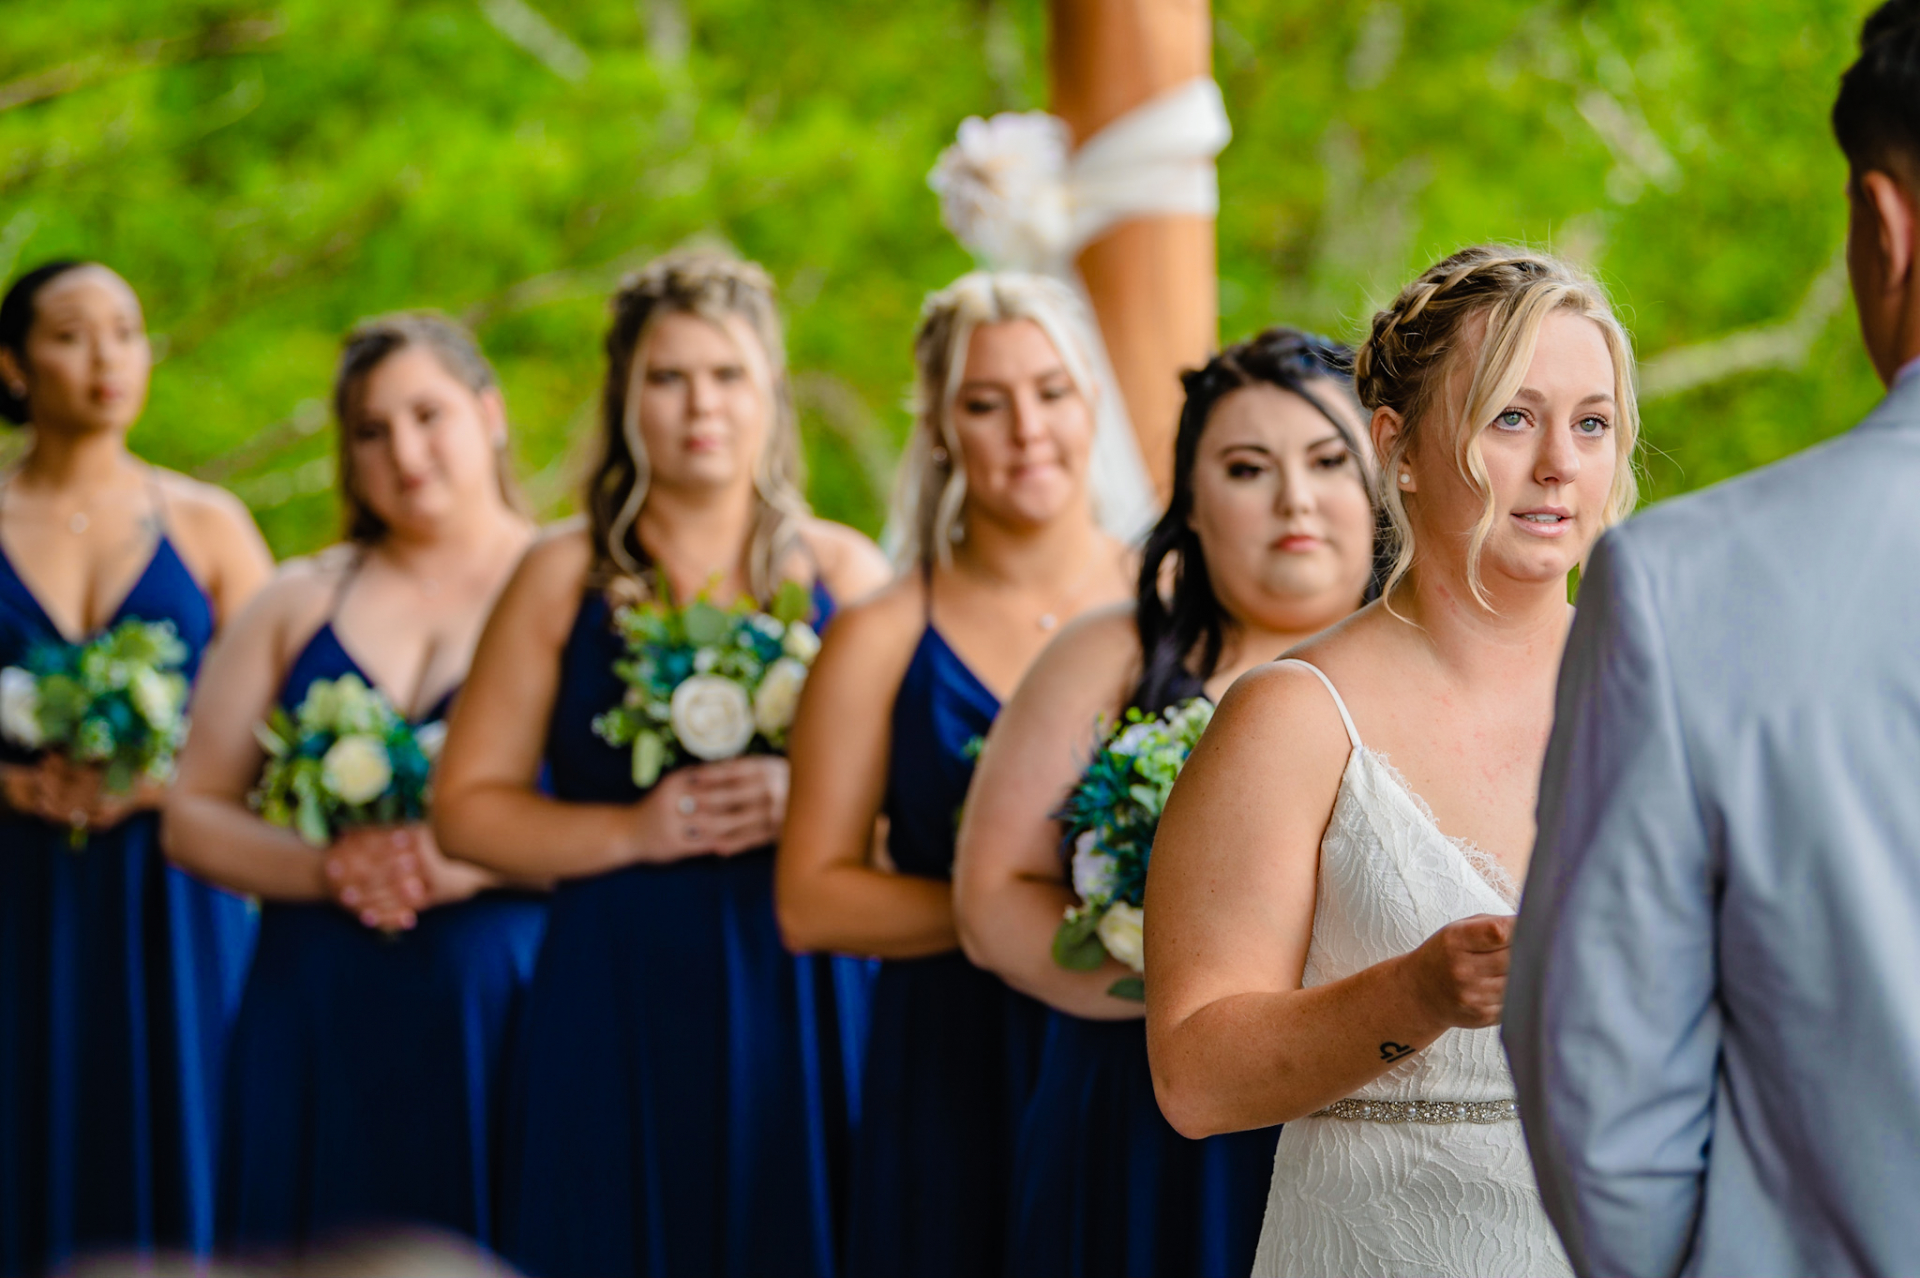 Pigeon Forge, TN, Outdoor Elopement Images | The bride looks at the groom as she says her vows to him